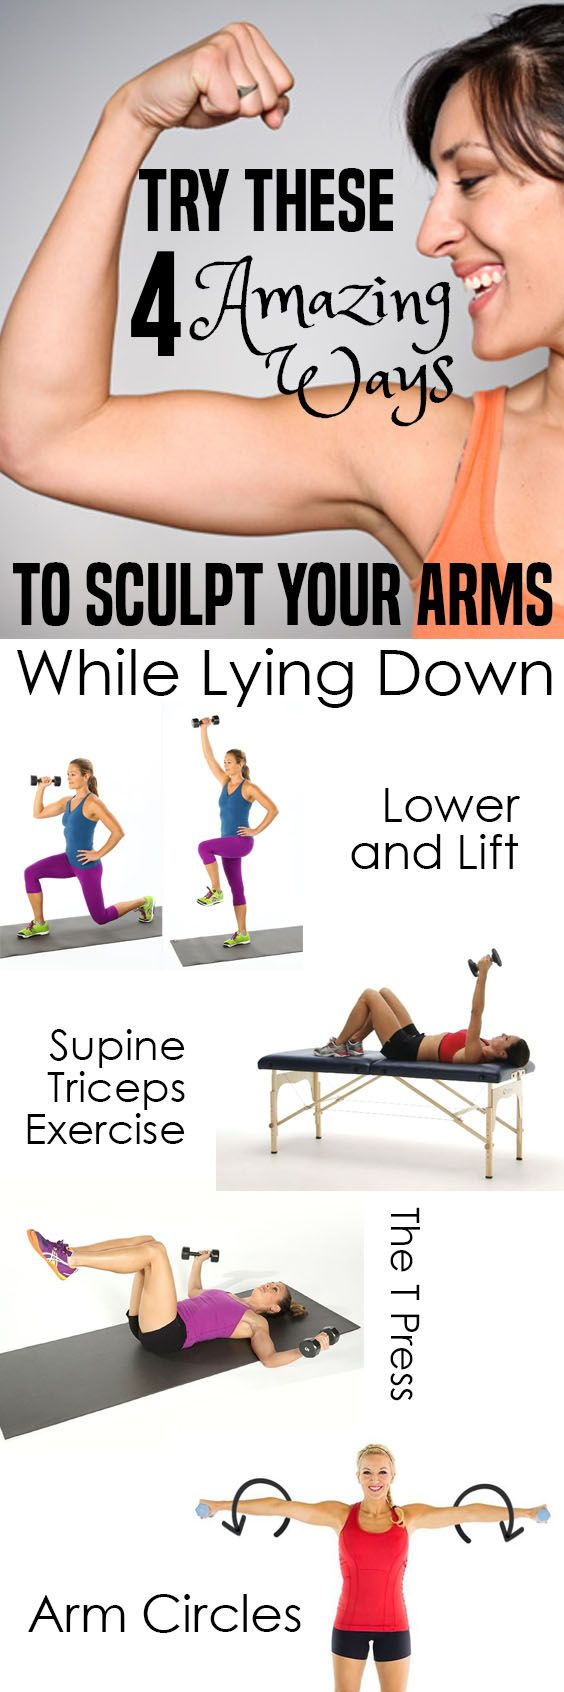 Try These 4 Amazing Ways To Sculpt Your Arms While Lying Down